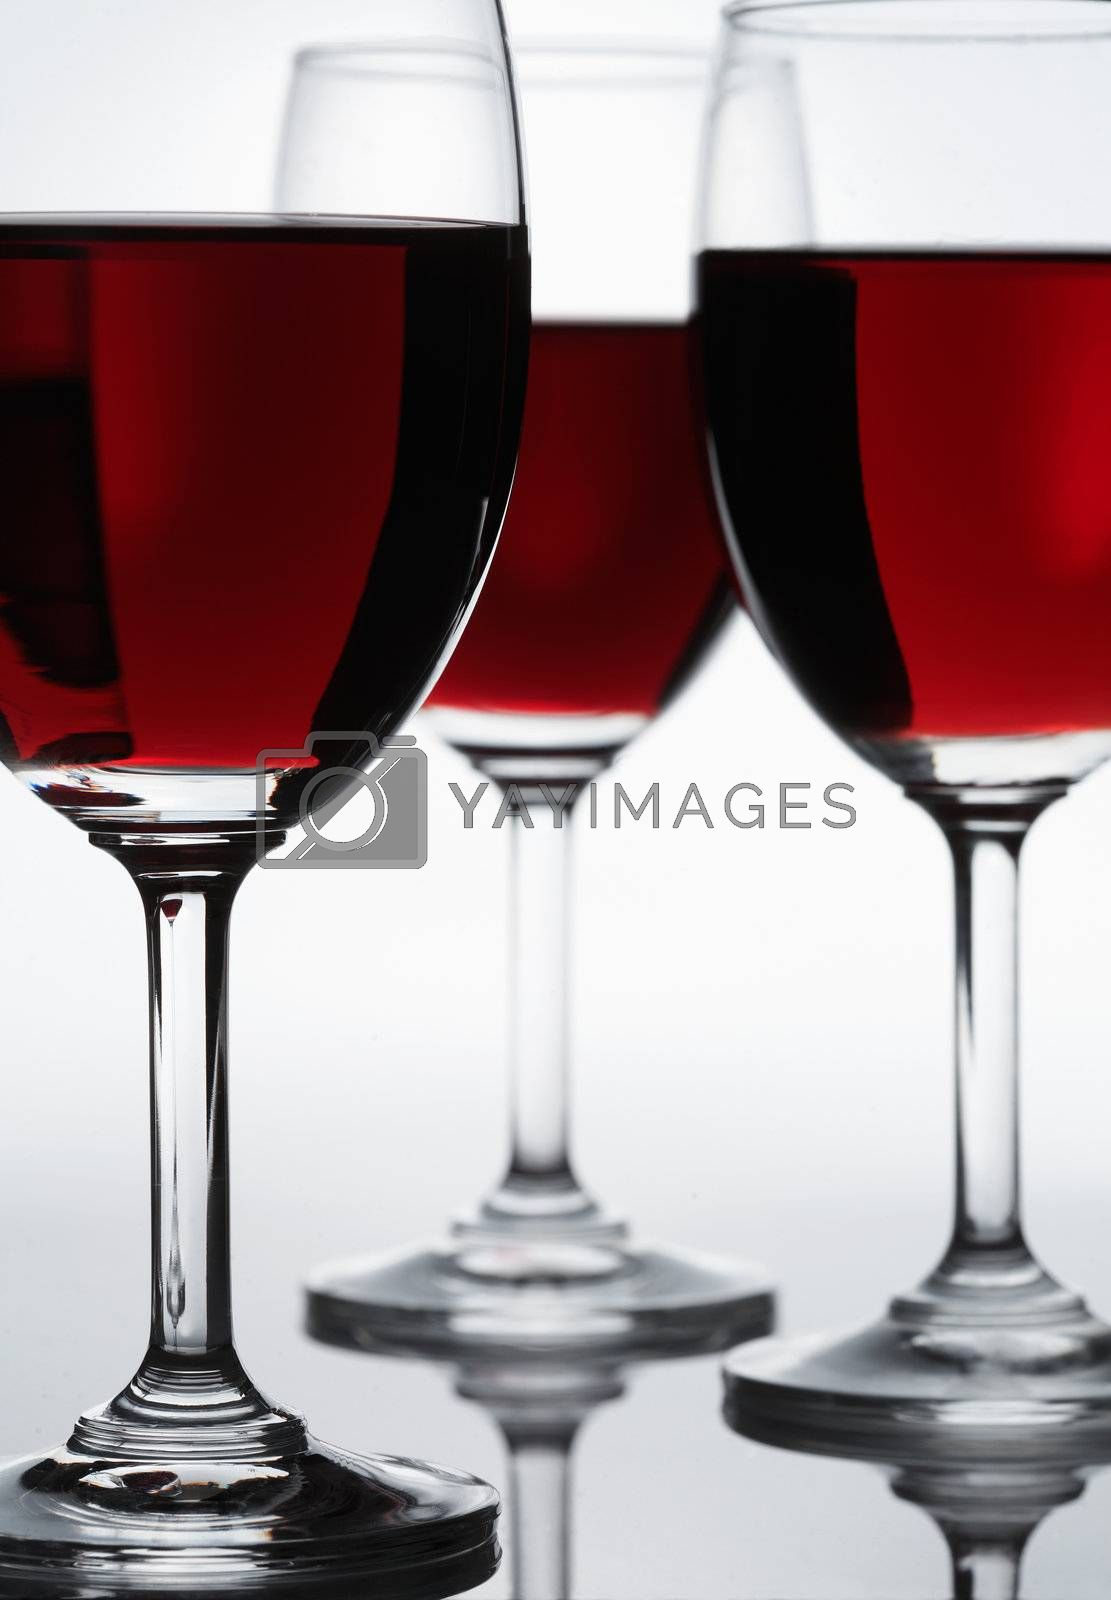 Three glasses of red wine. Focus is on the first glass.